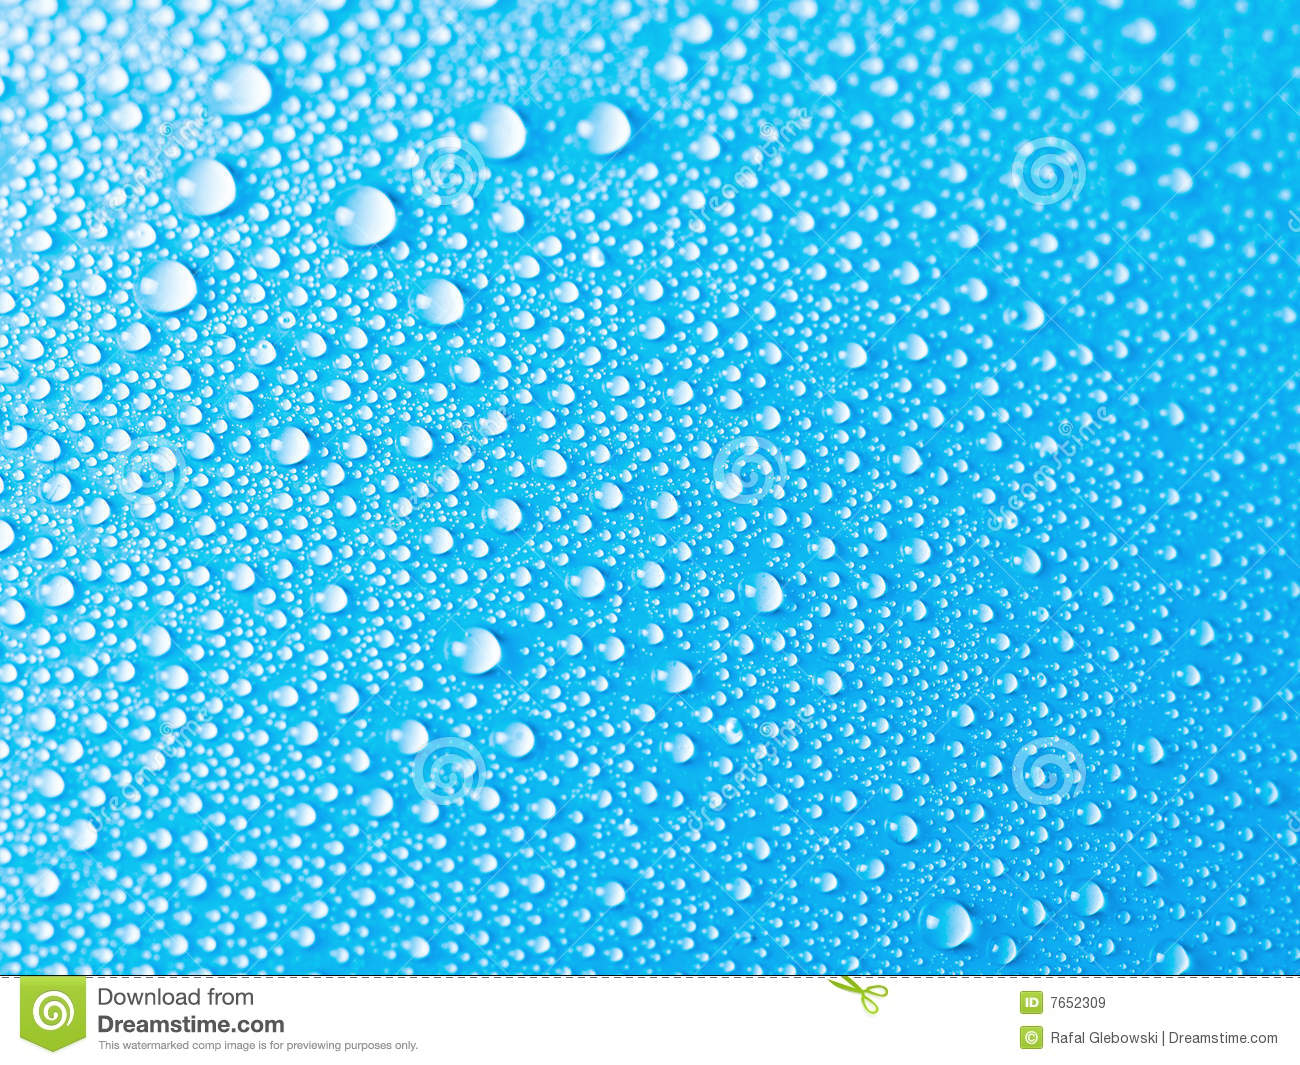 Blue Water Drops Background Texture Stock Image - Image of abstract